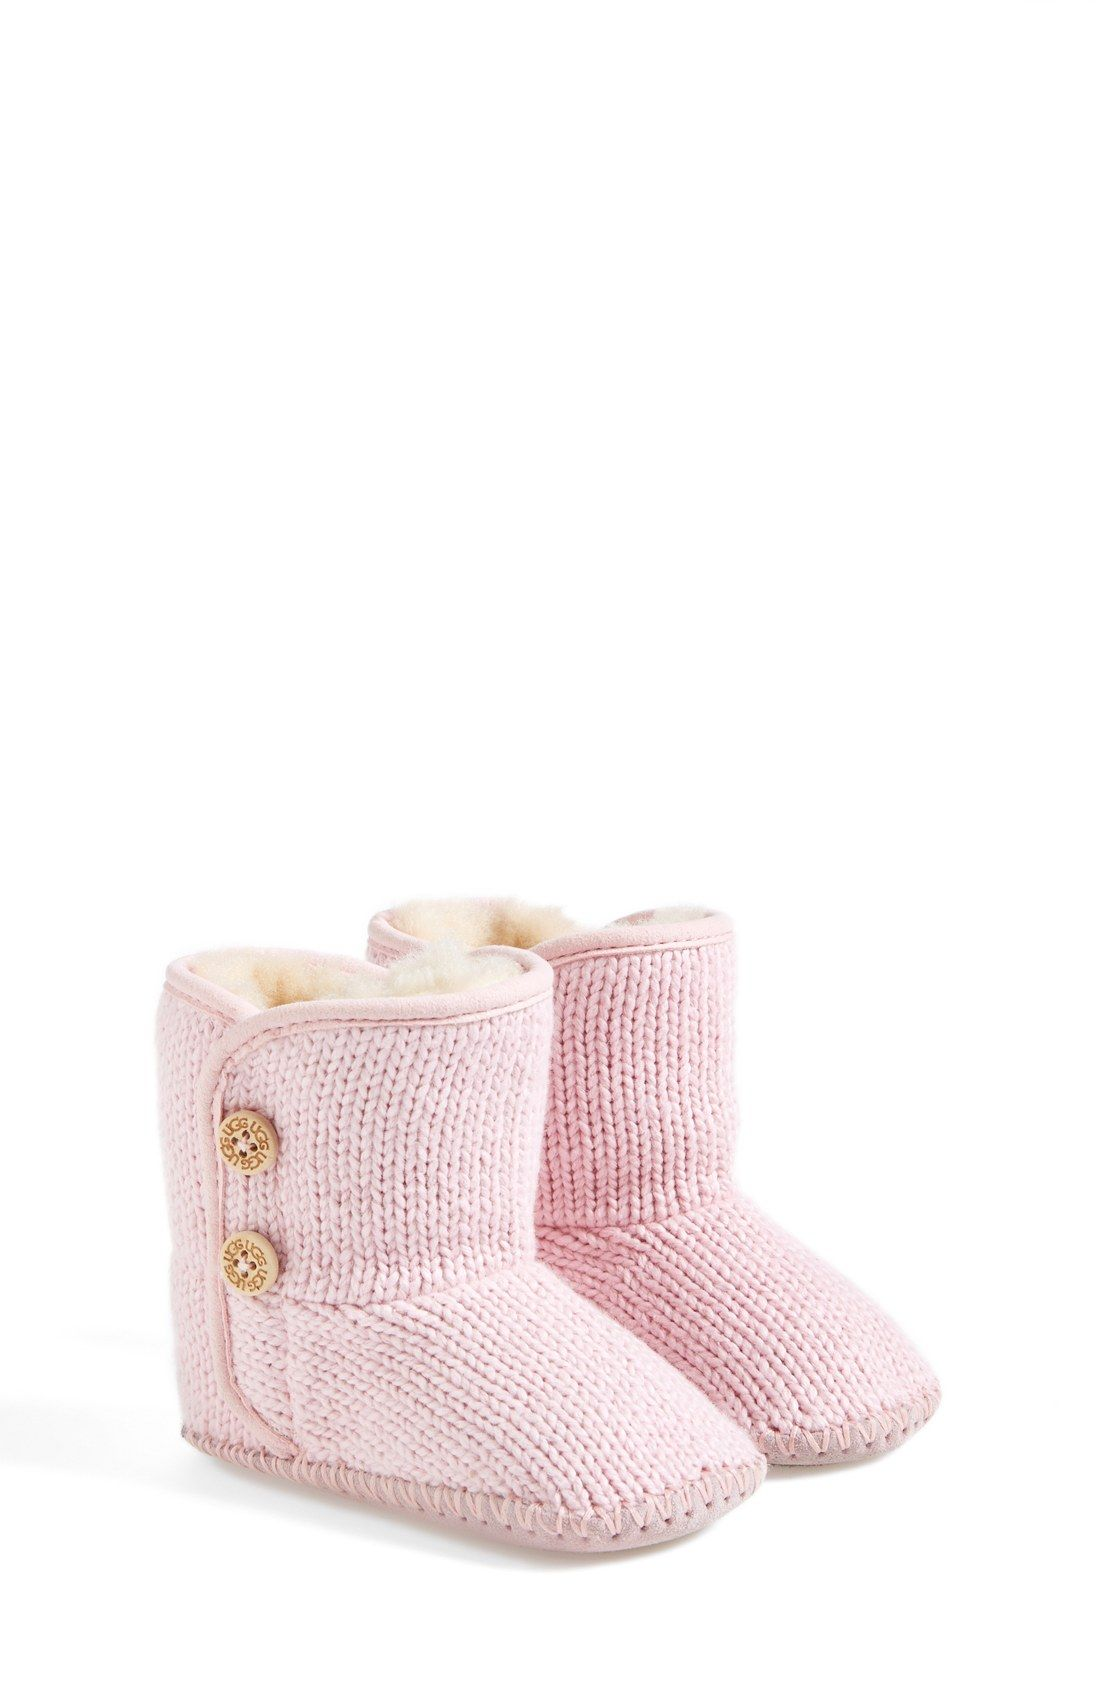 Ugg 174 Purl Knit Bootie Baby Amp Walker Baby Girl Shoes